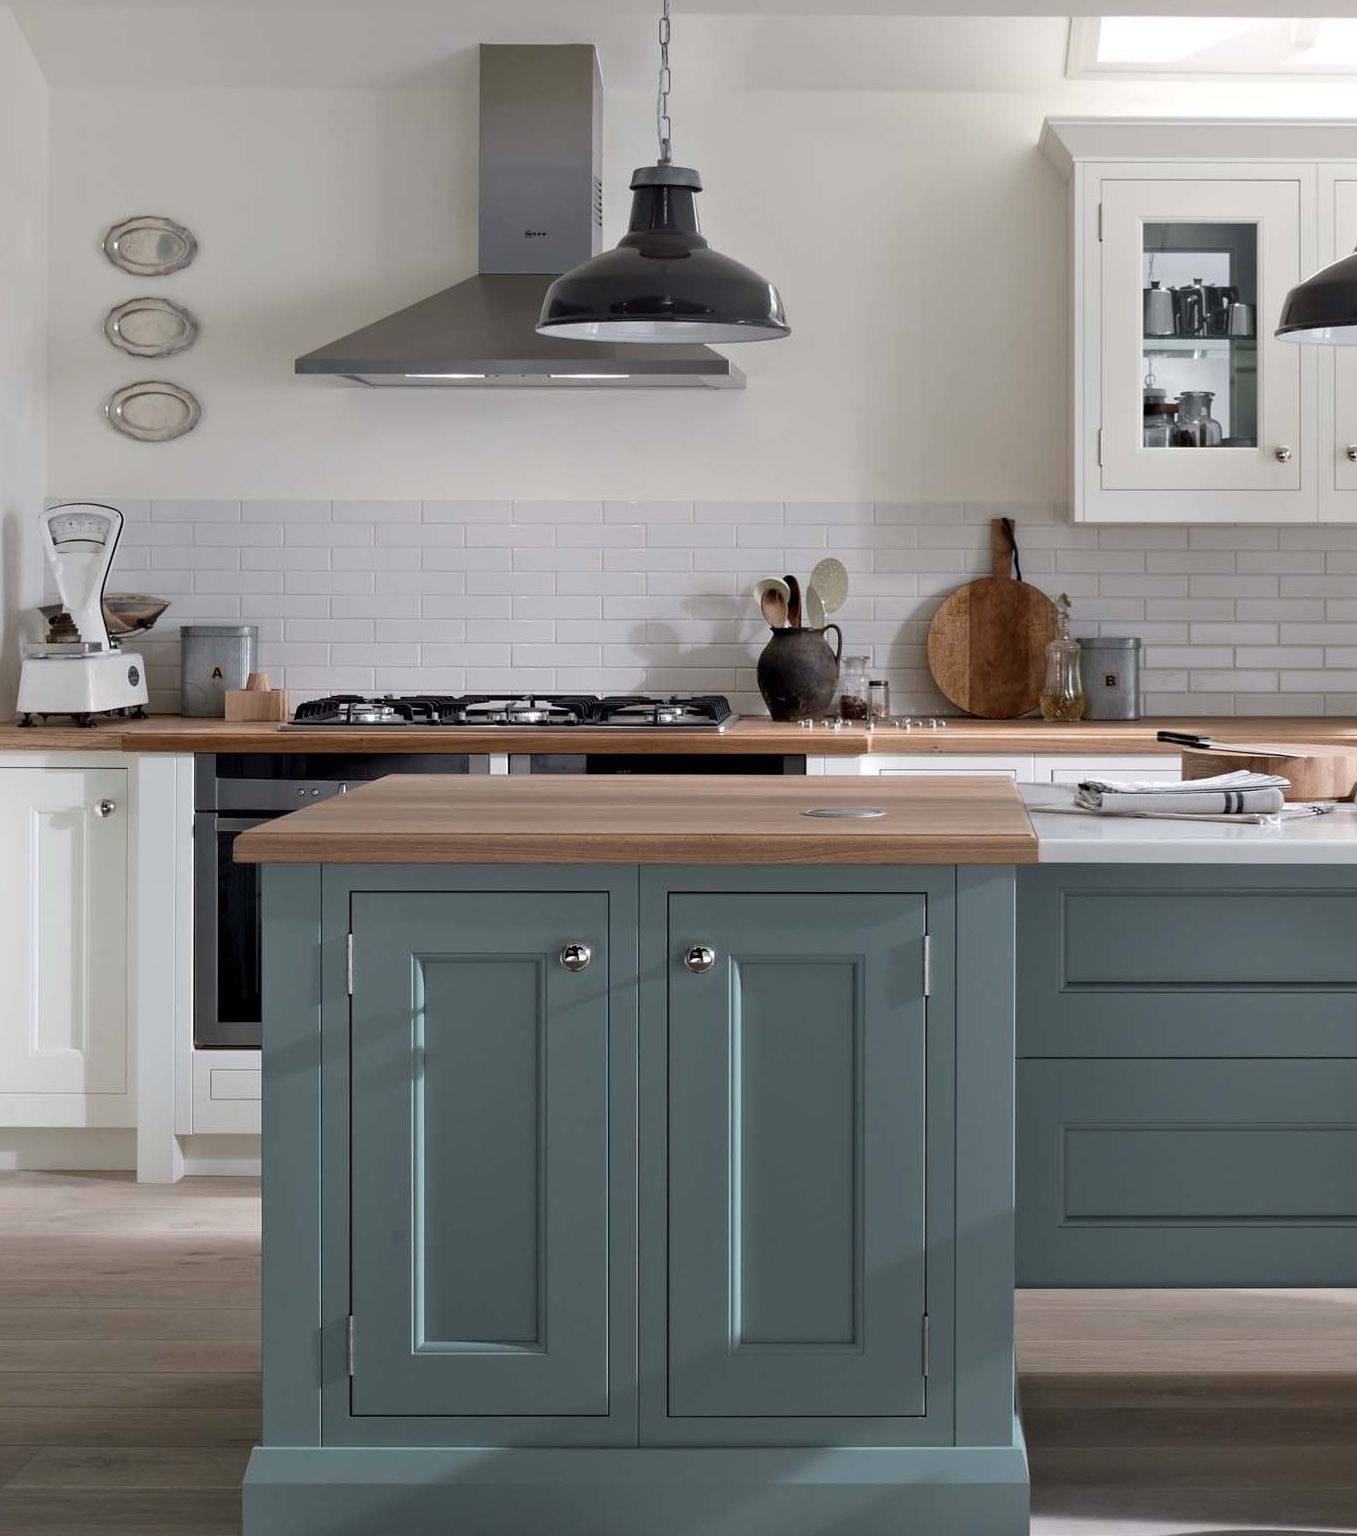 1909 Kitchen In Morris Blue Available From Aristocraft Traditional Kitchen Inspiration Kitchen Design Kitchen Inspirations